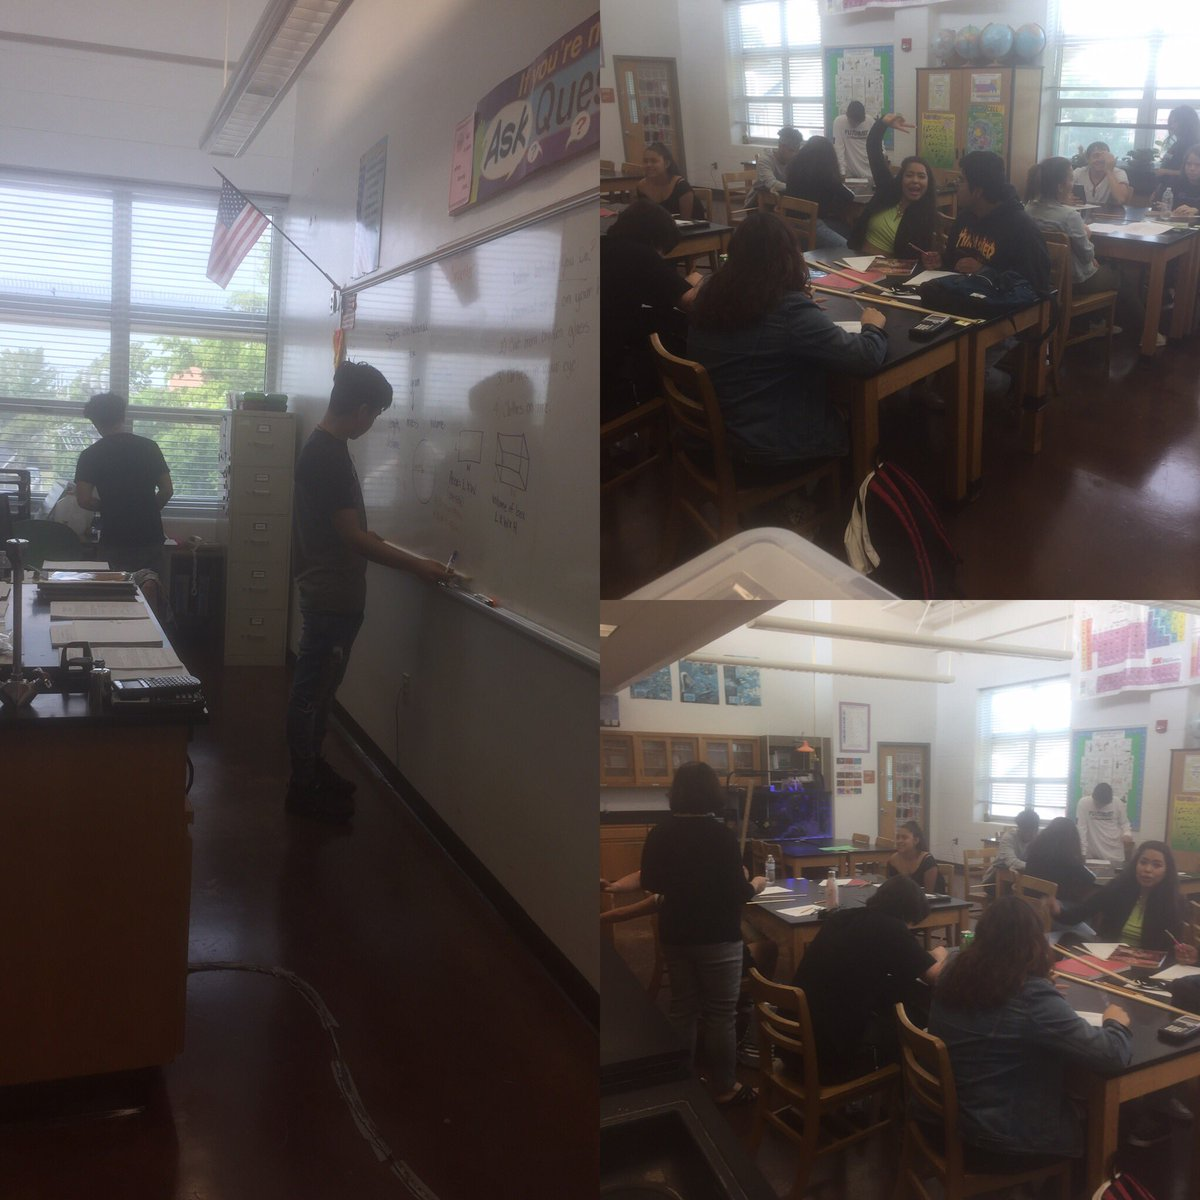 Students working on a lab. <a target='_blank' href='http://search.twitter.com/search?q=APSBack2School'><a target='_blank' href='https://twitter.com/hashtag/APSBack2School?src=hash'>#APSBack2School</a></a> <a target='_blank' href='https://t.co/gMDmq8e9PF'>https://t.co/gMDmq8e9PF</a>